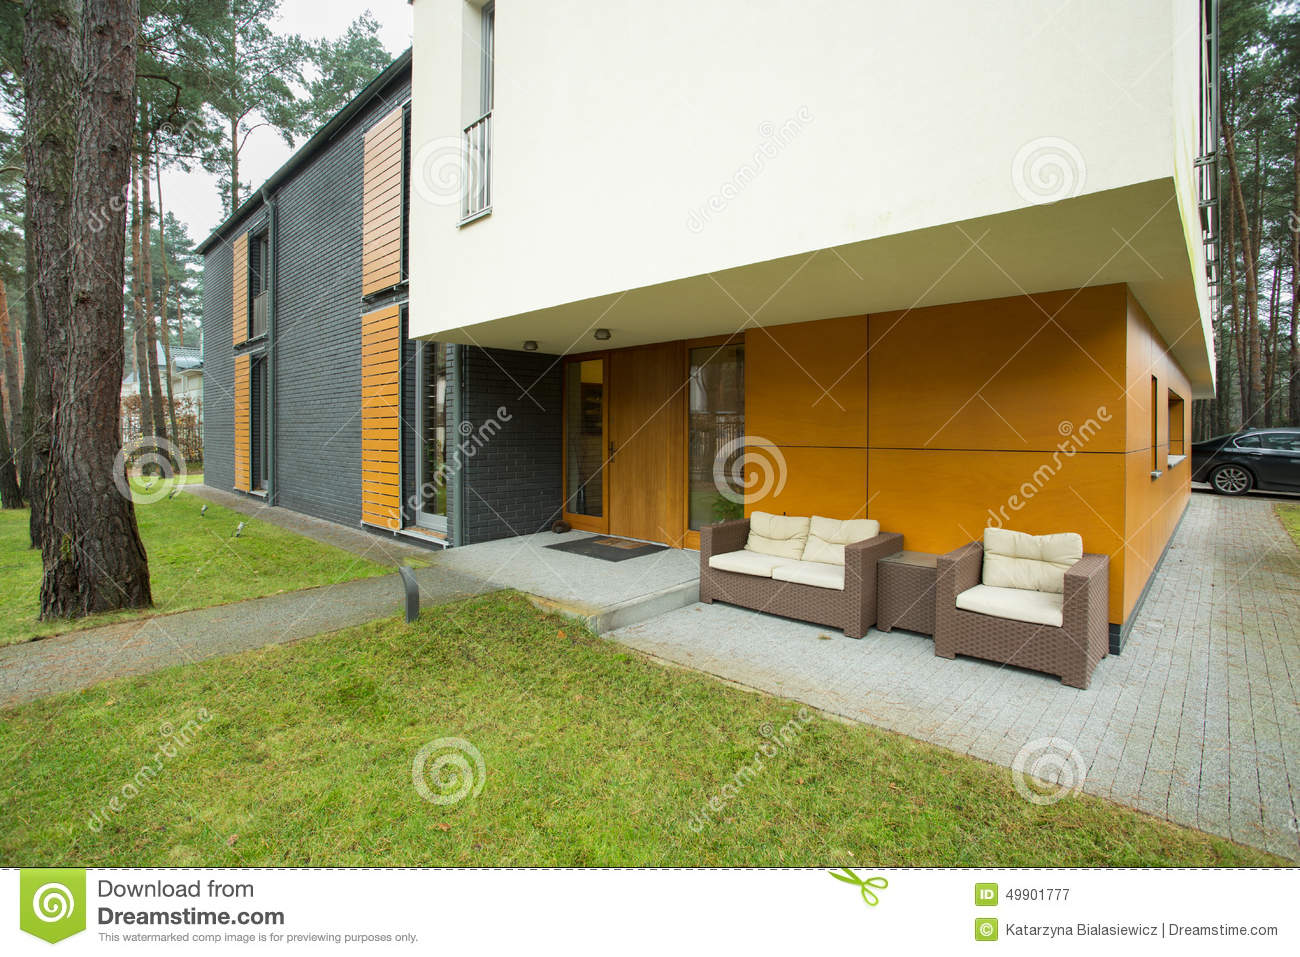 Modern House ntrance oyalty Free Stock Photo - Image: 5171615 - ^